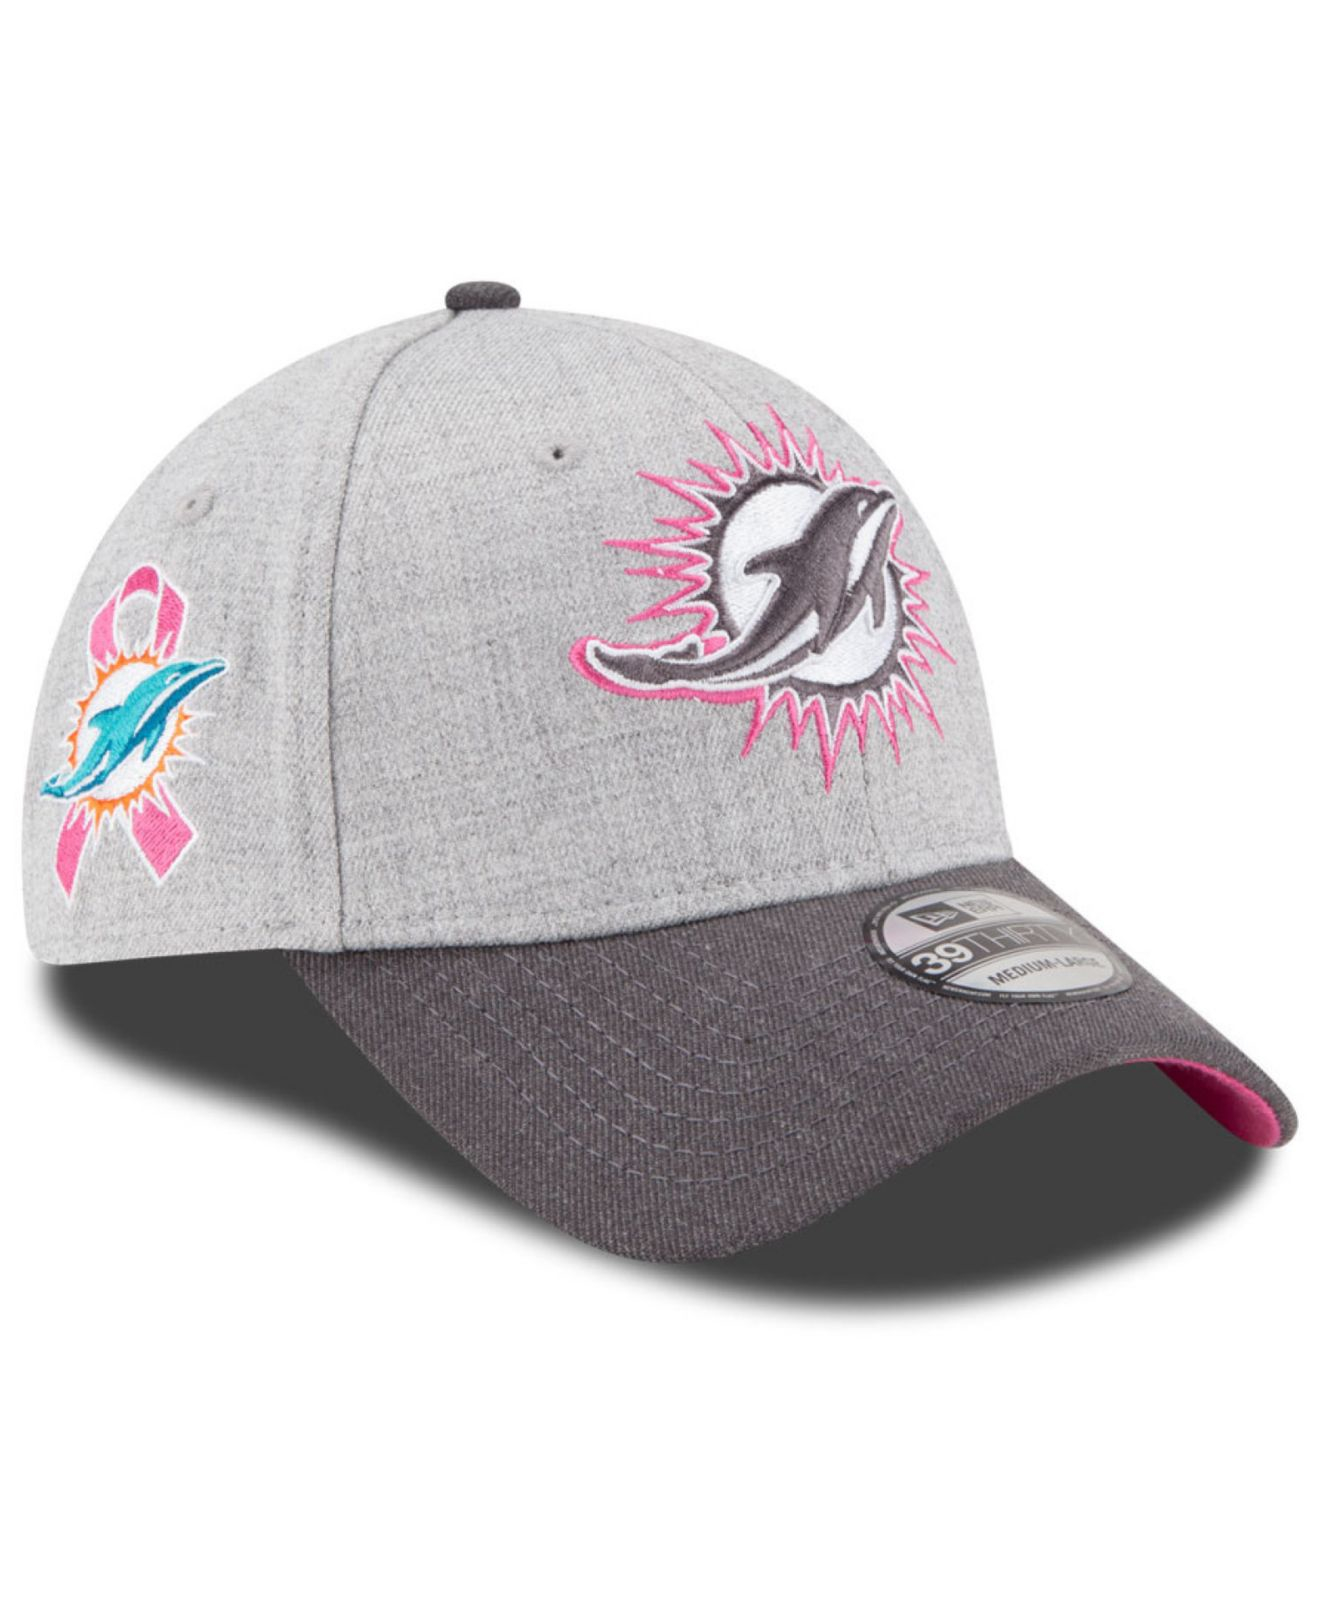 2e3a798619742a ... hot lyst ktz miami dolphins breast cancer awareness 39thirty cap in  gray f1b68 a077a